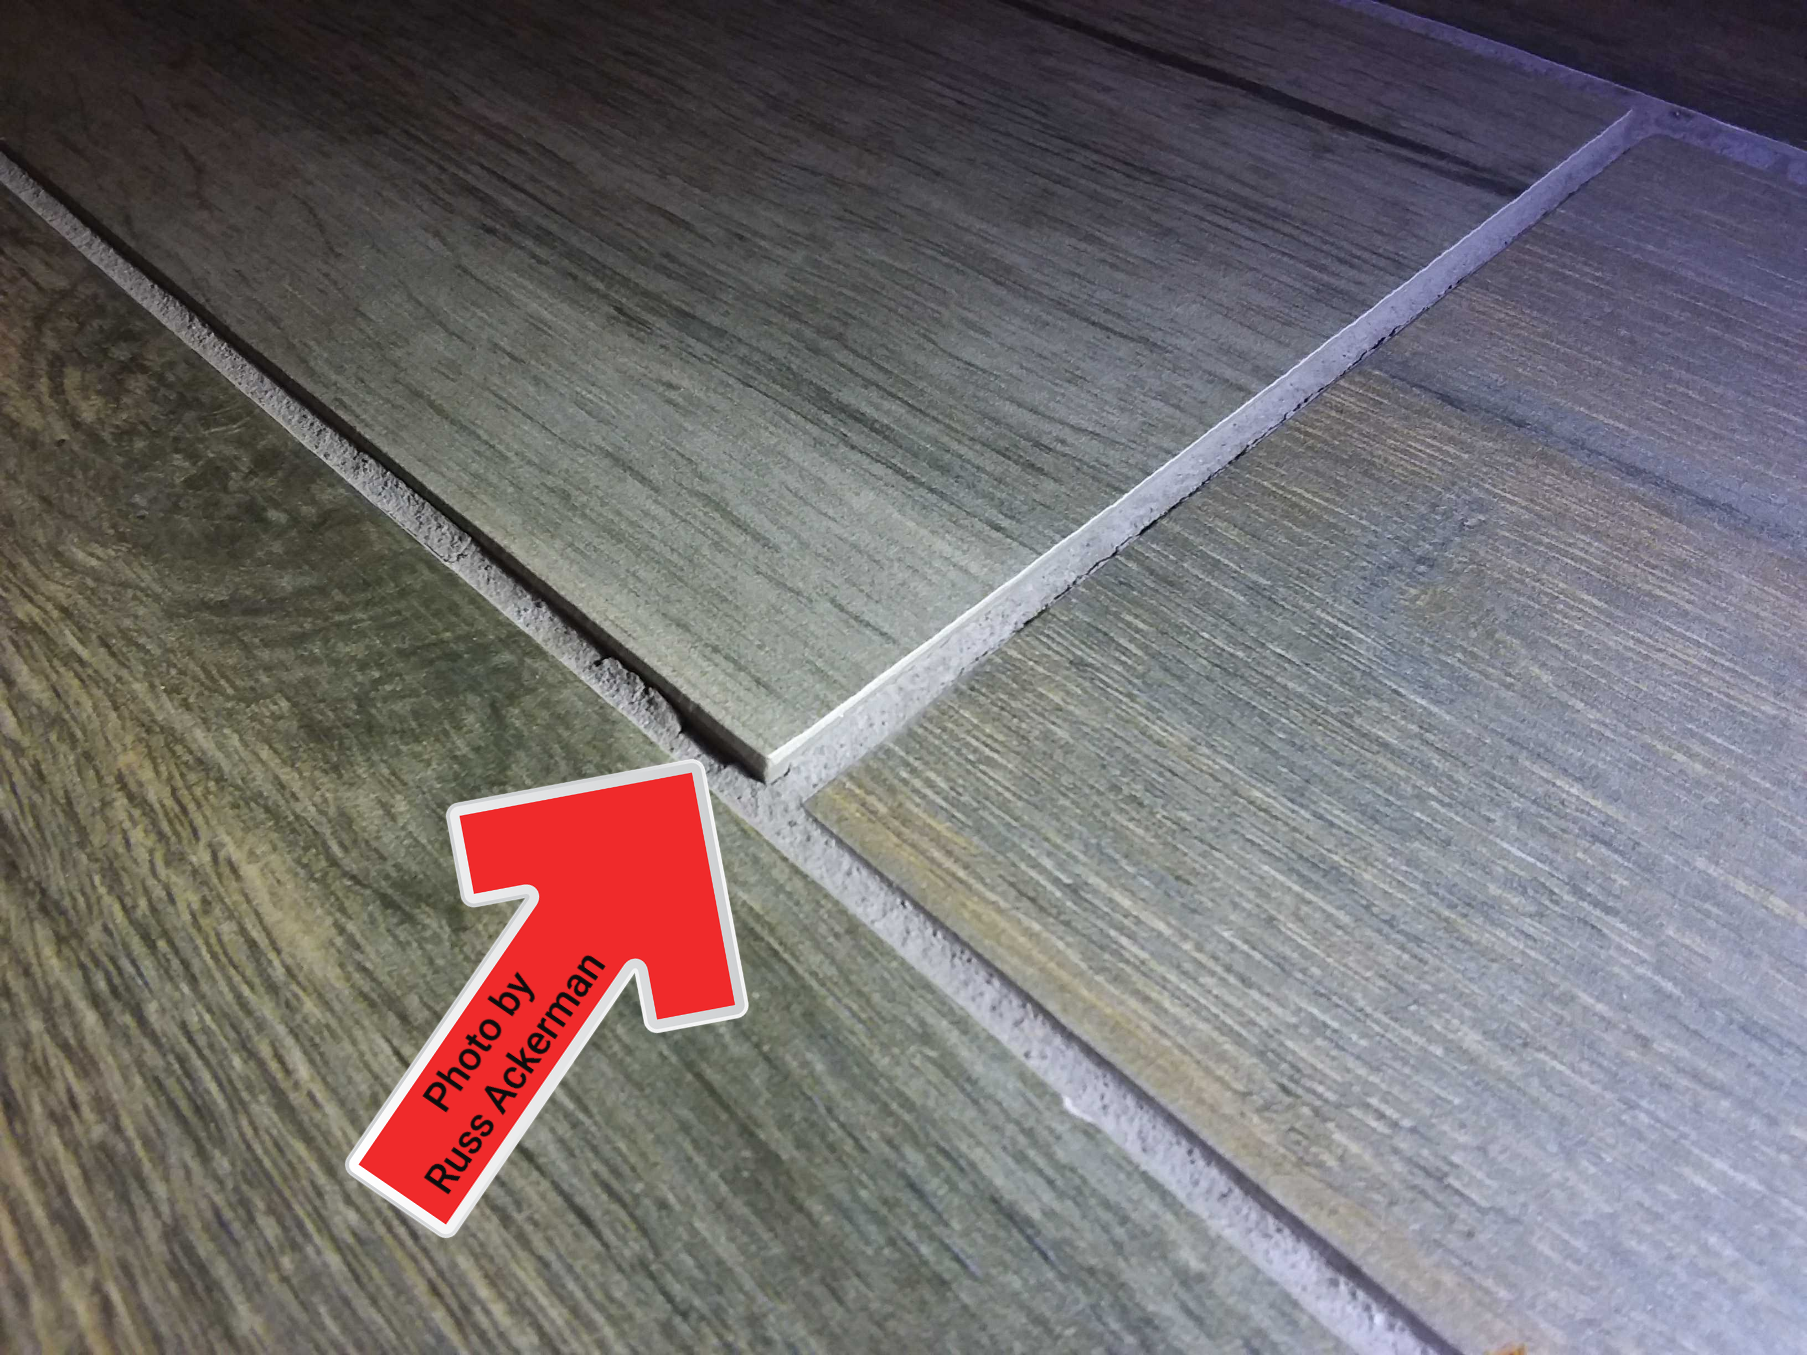 Floor tiles that don't lay flat could become a potential trip hazard and could easily crack or break.